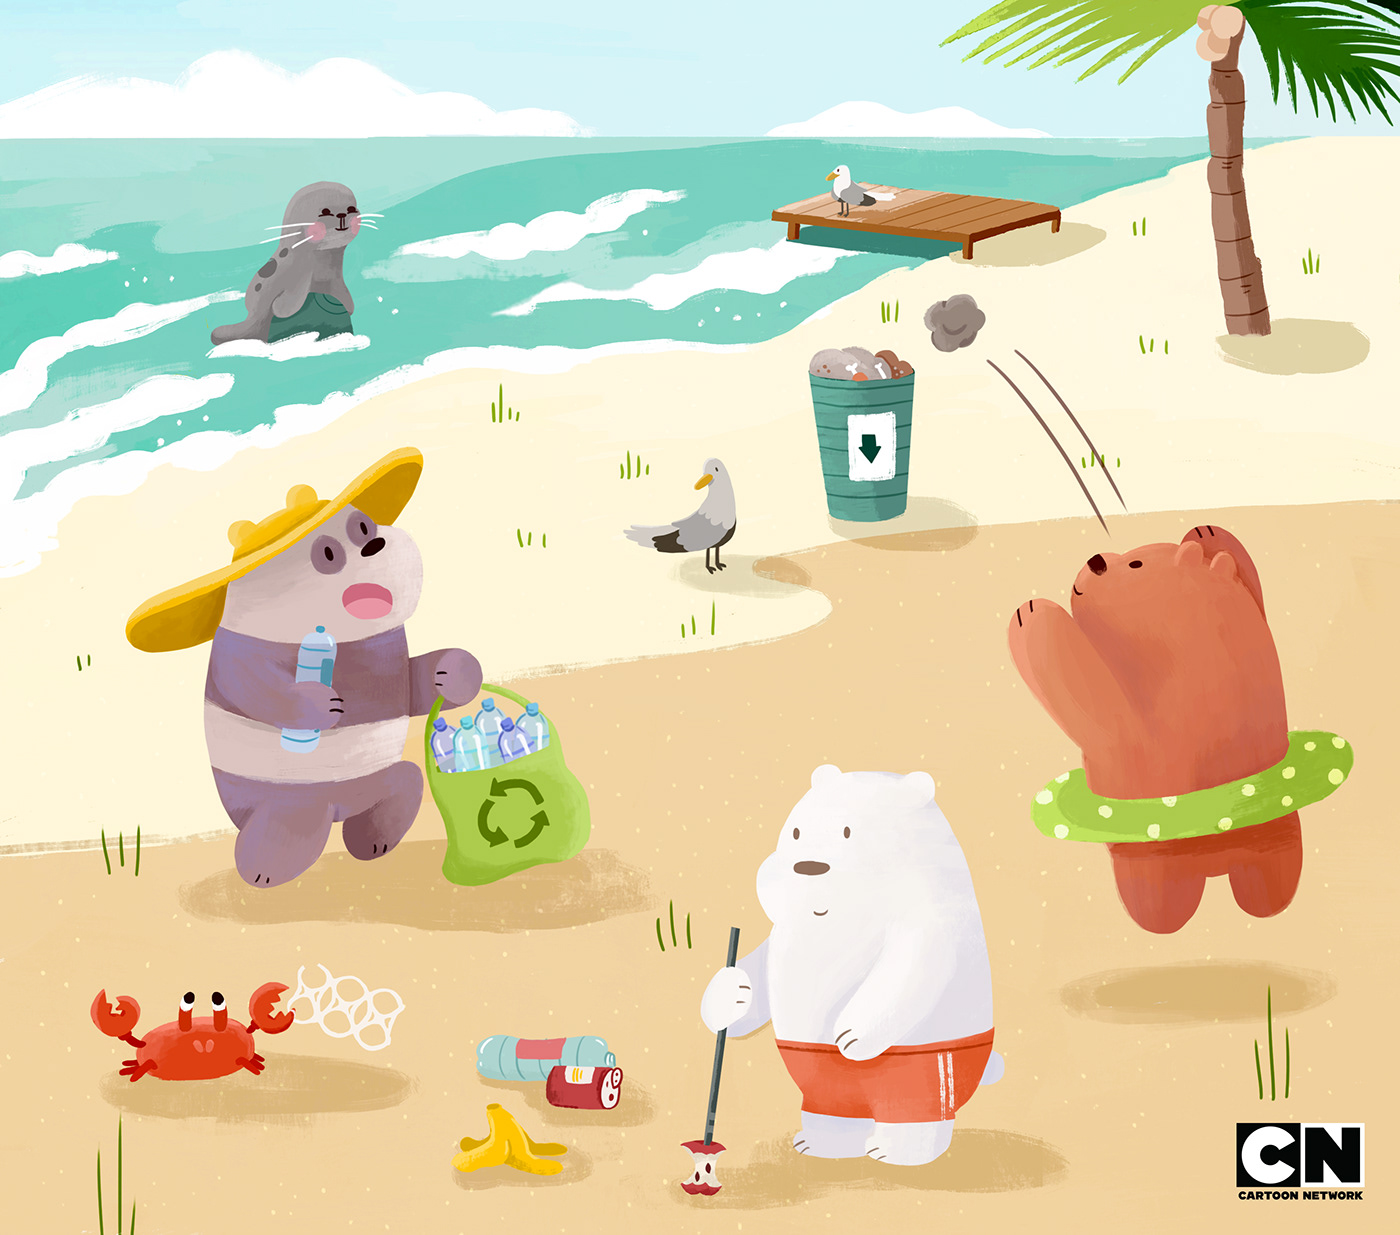 Cartoon Beach : Download 62,000+ royalty free cartoon beach vector images.